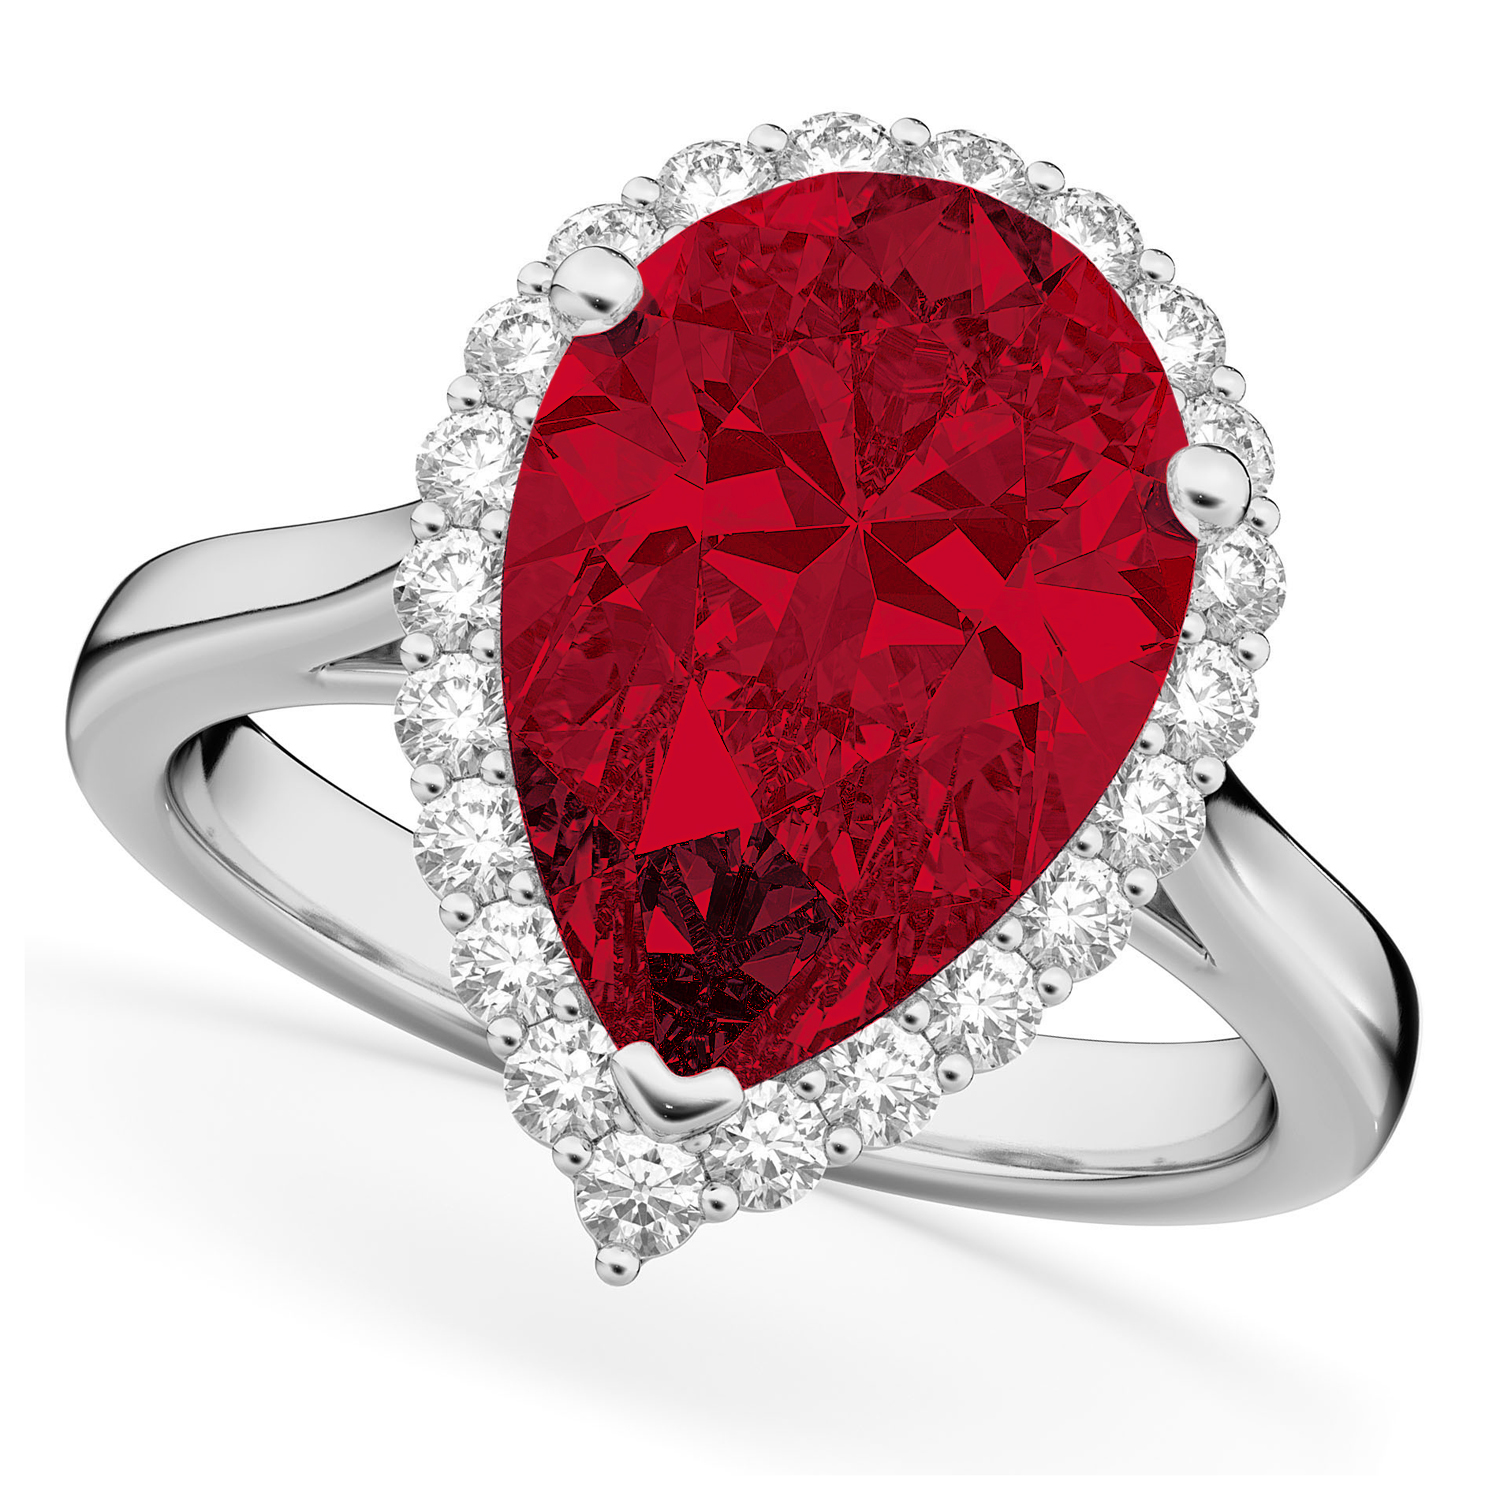 Pear Cut Halo Ruby & Diamond Engagement Ring 14K White Gold 8.34ct